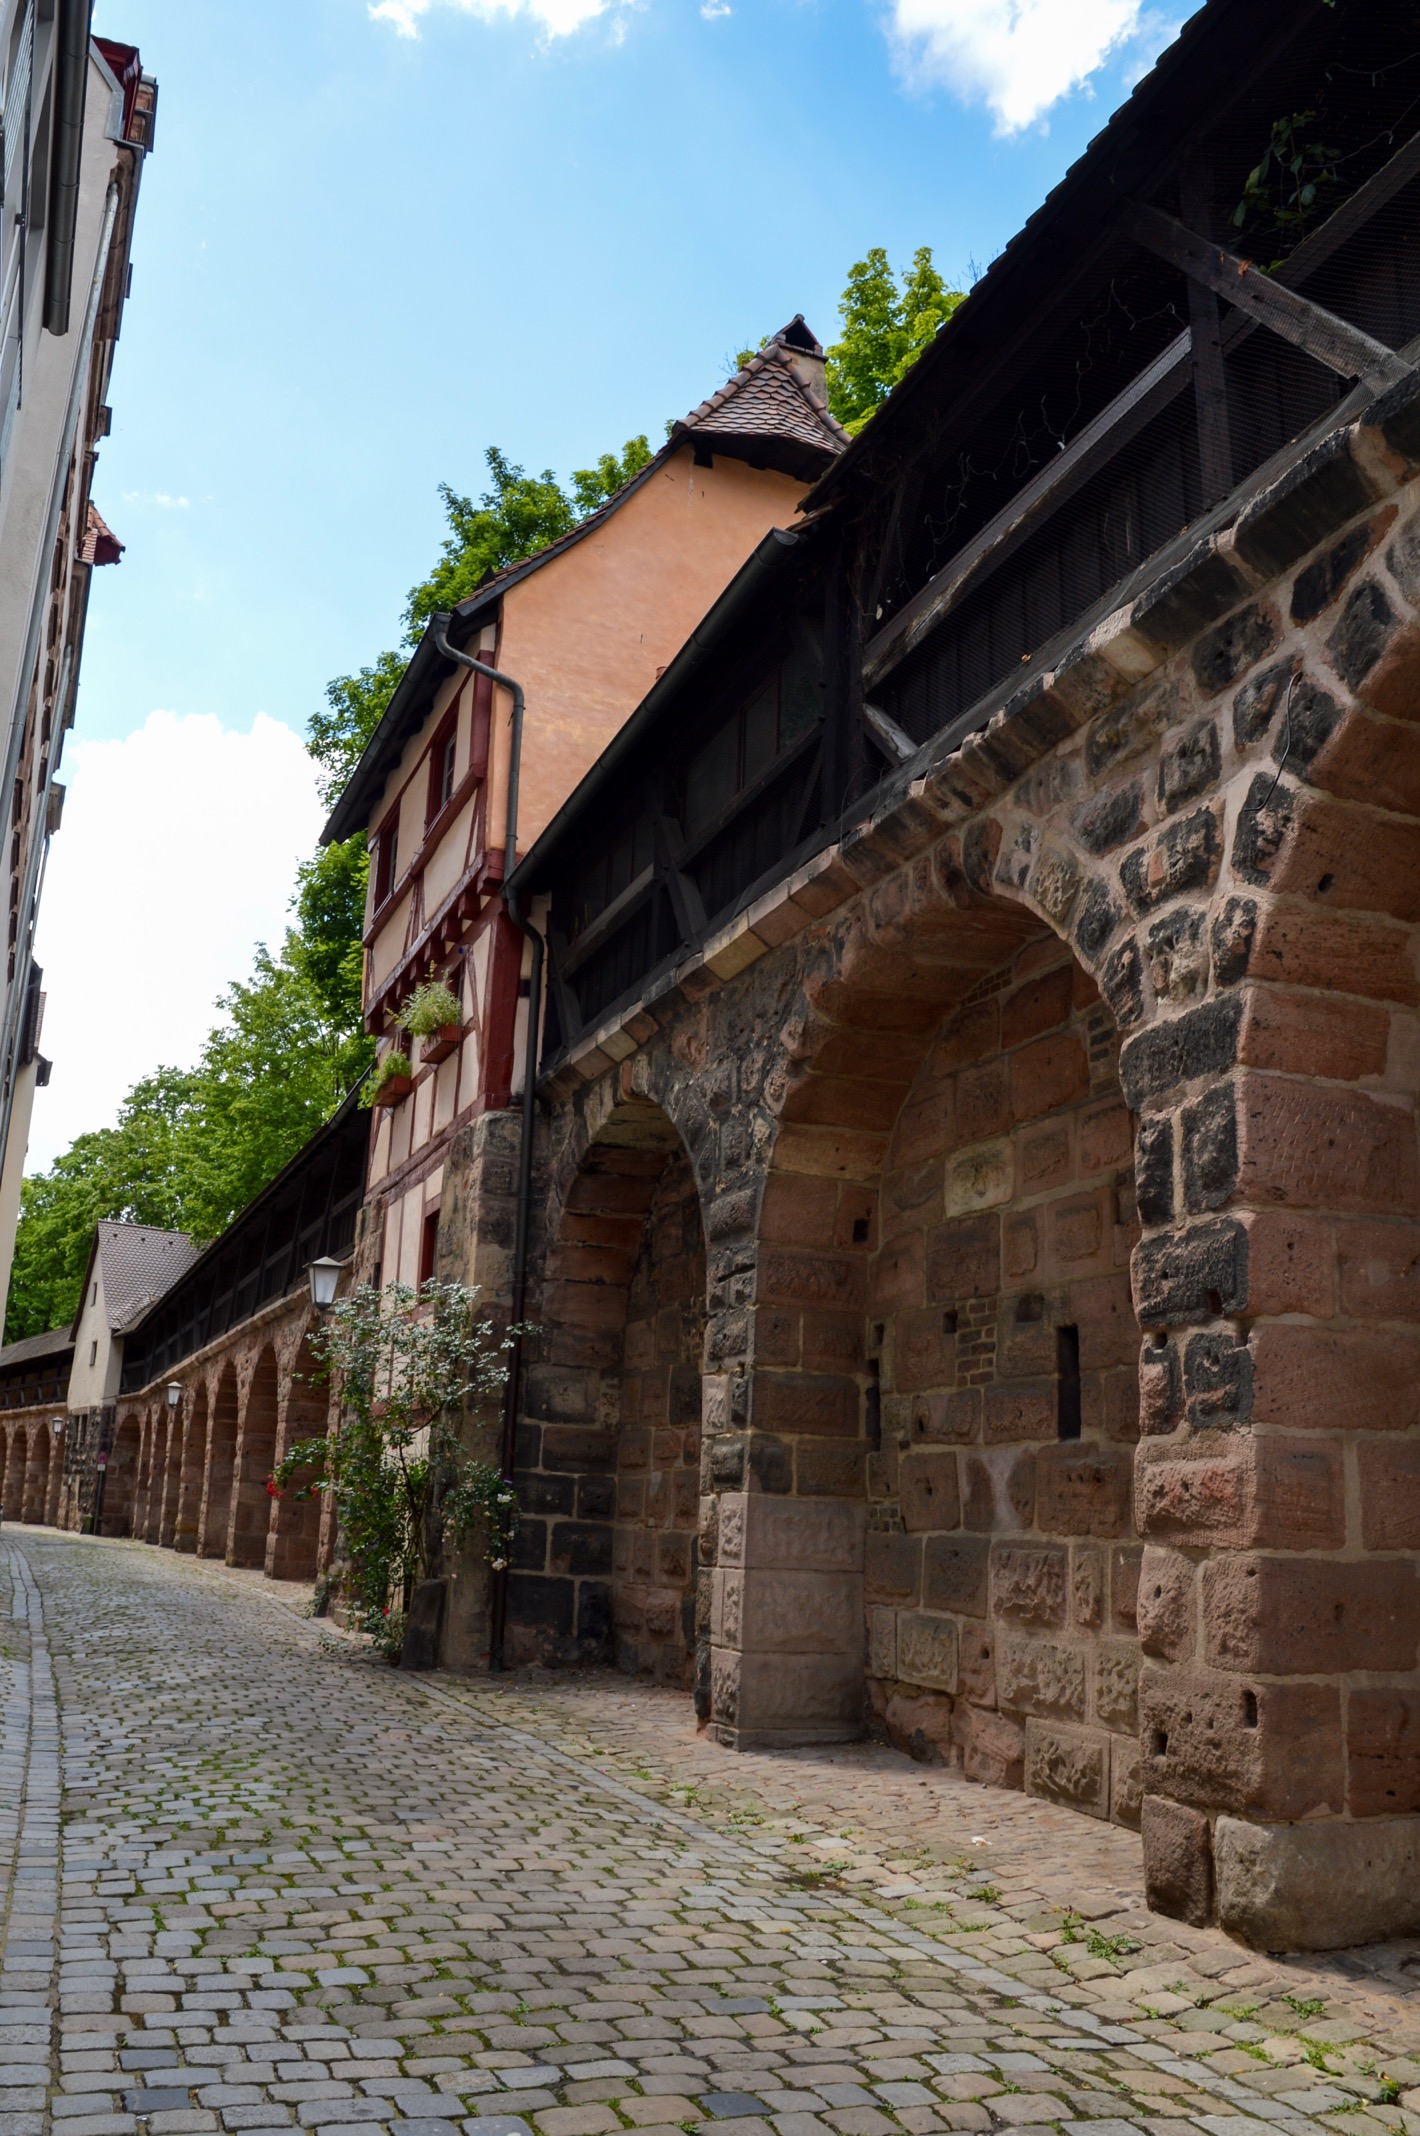 Nuremberg old city walls, Germany